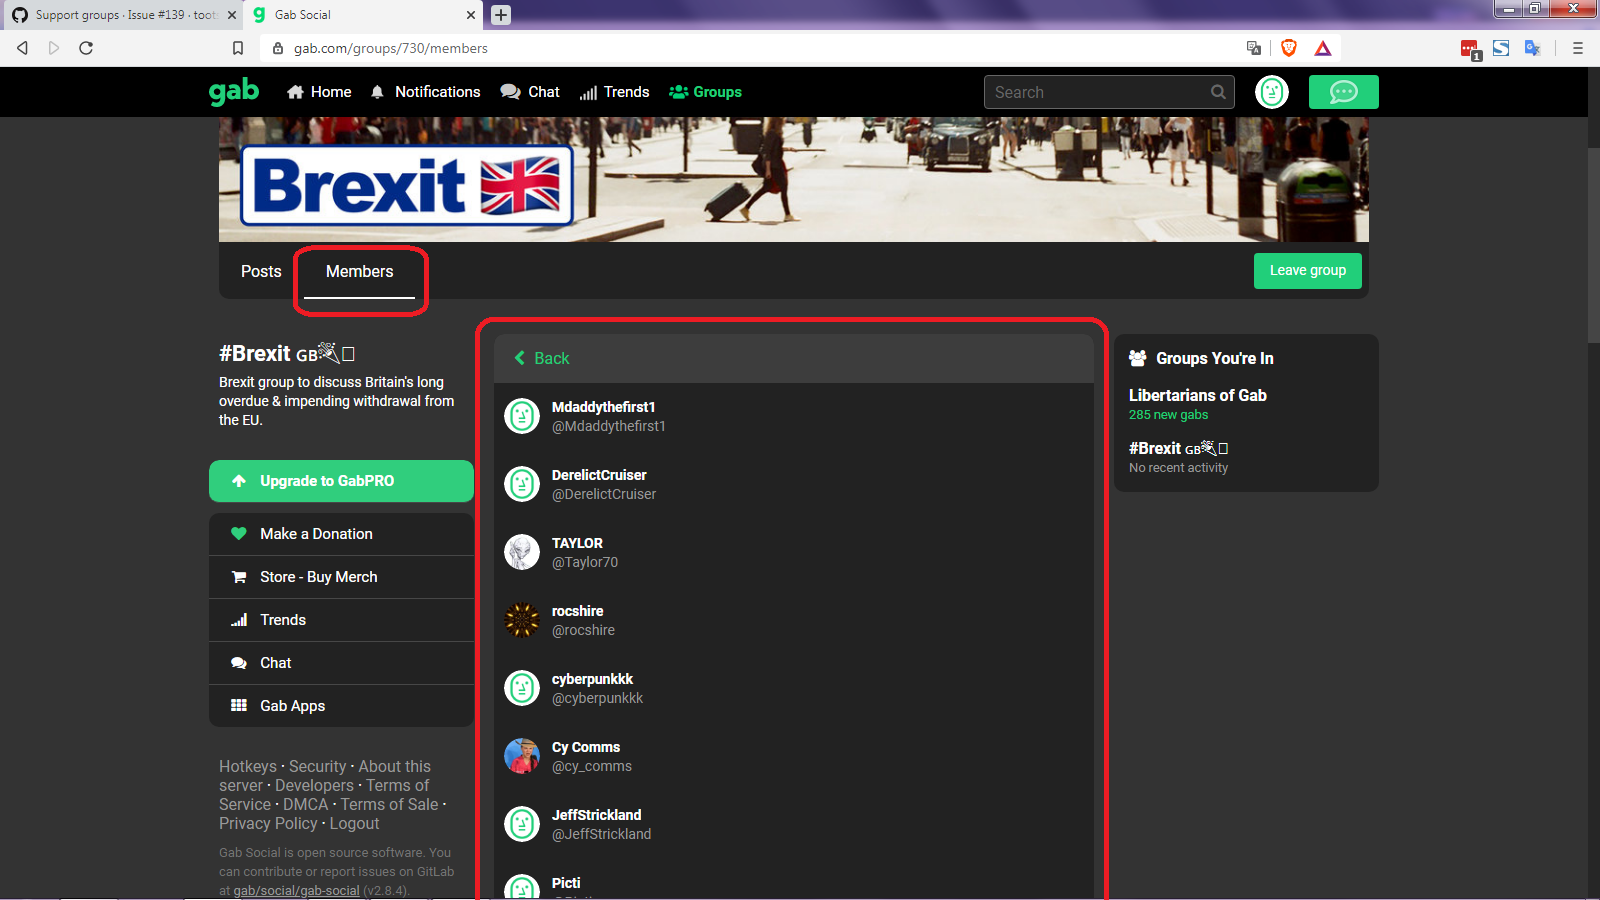 mastodon-groups-03-inside-a-group-members-view